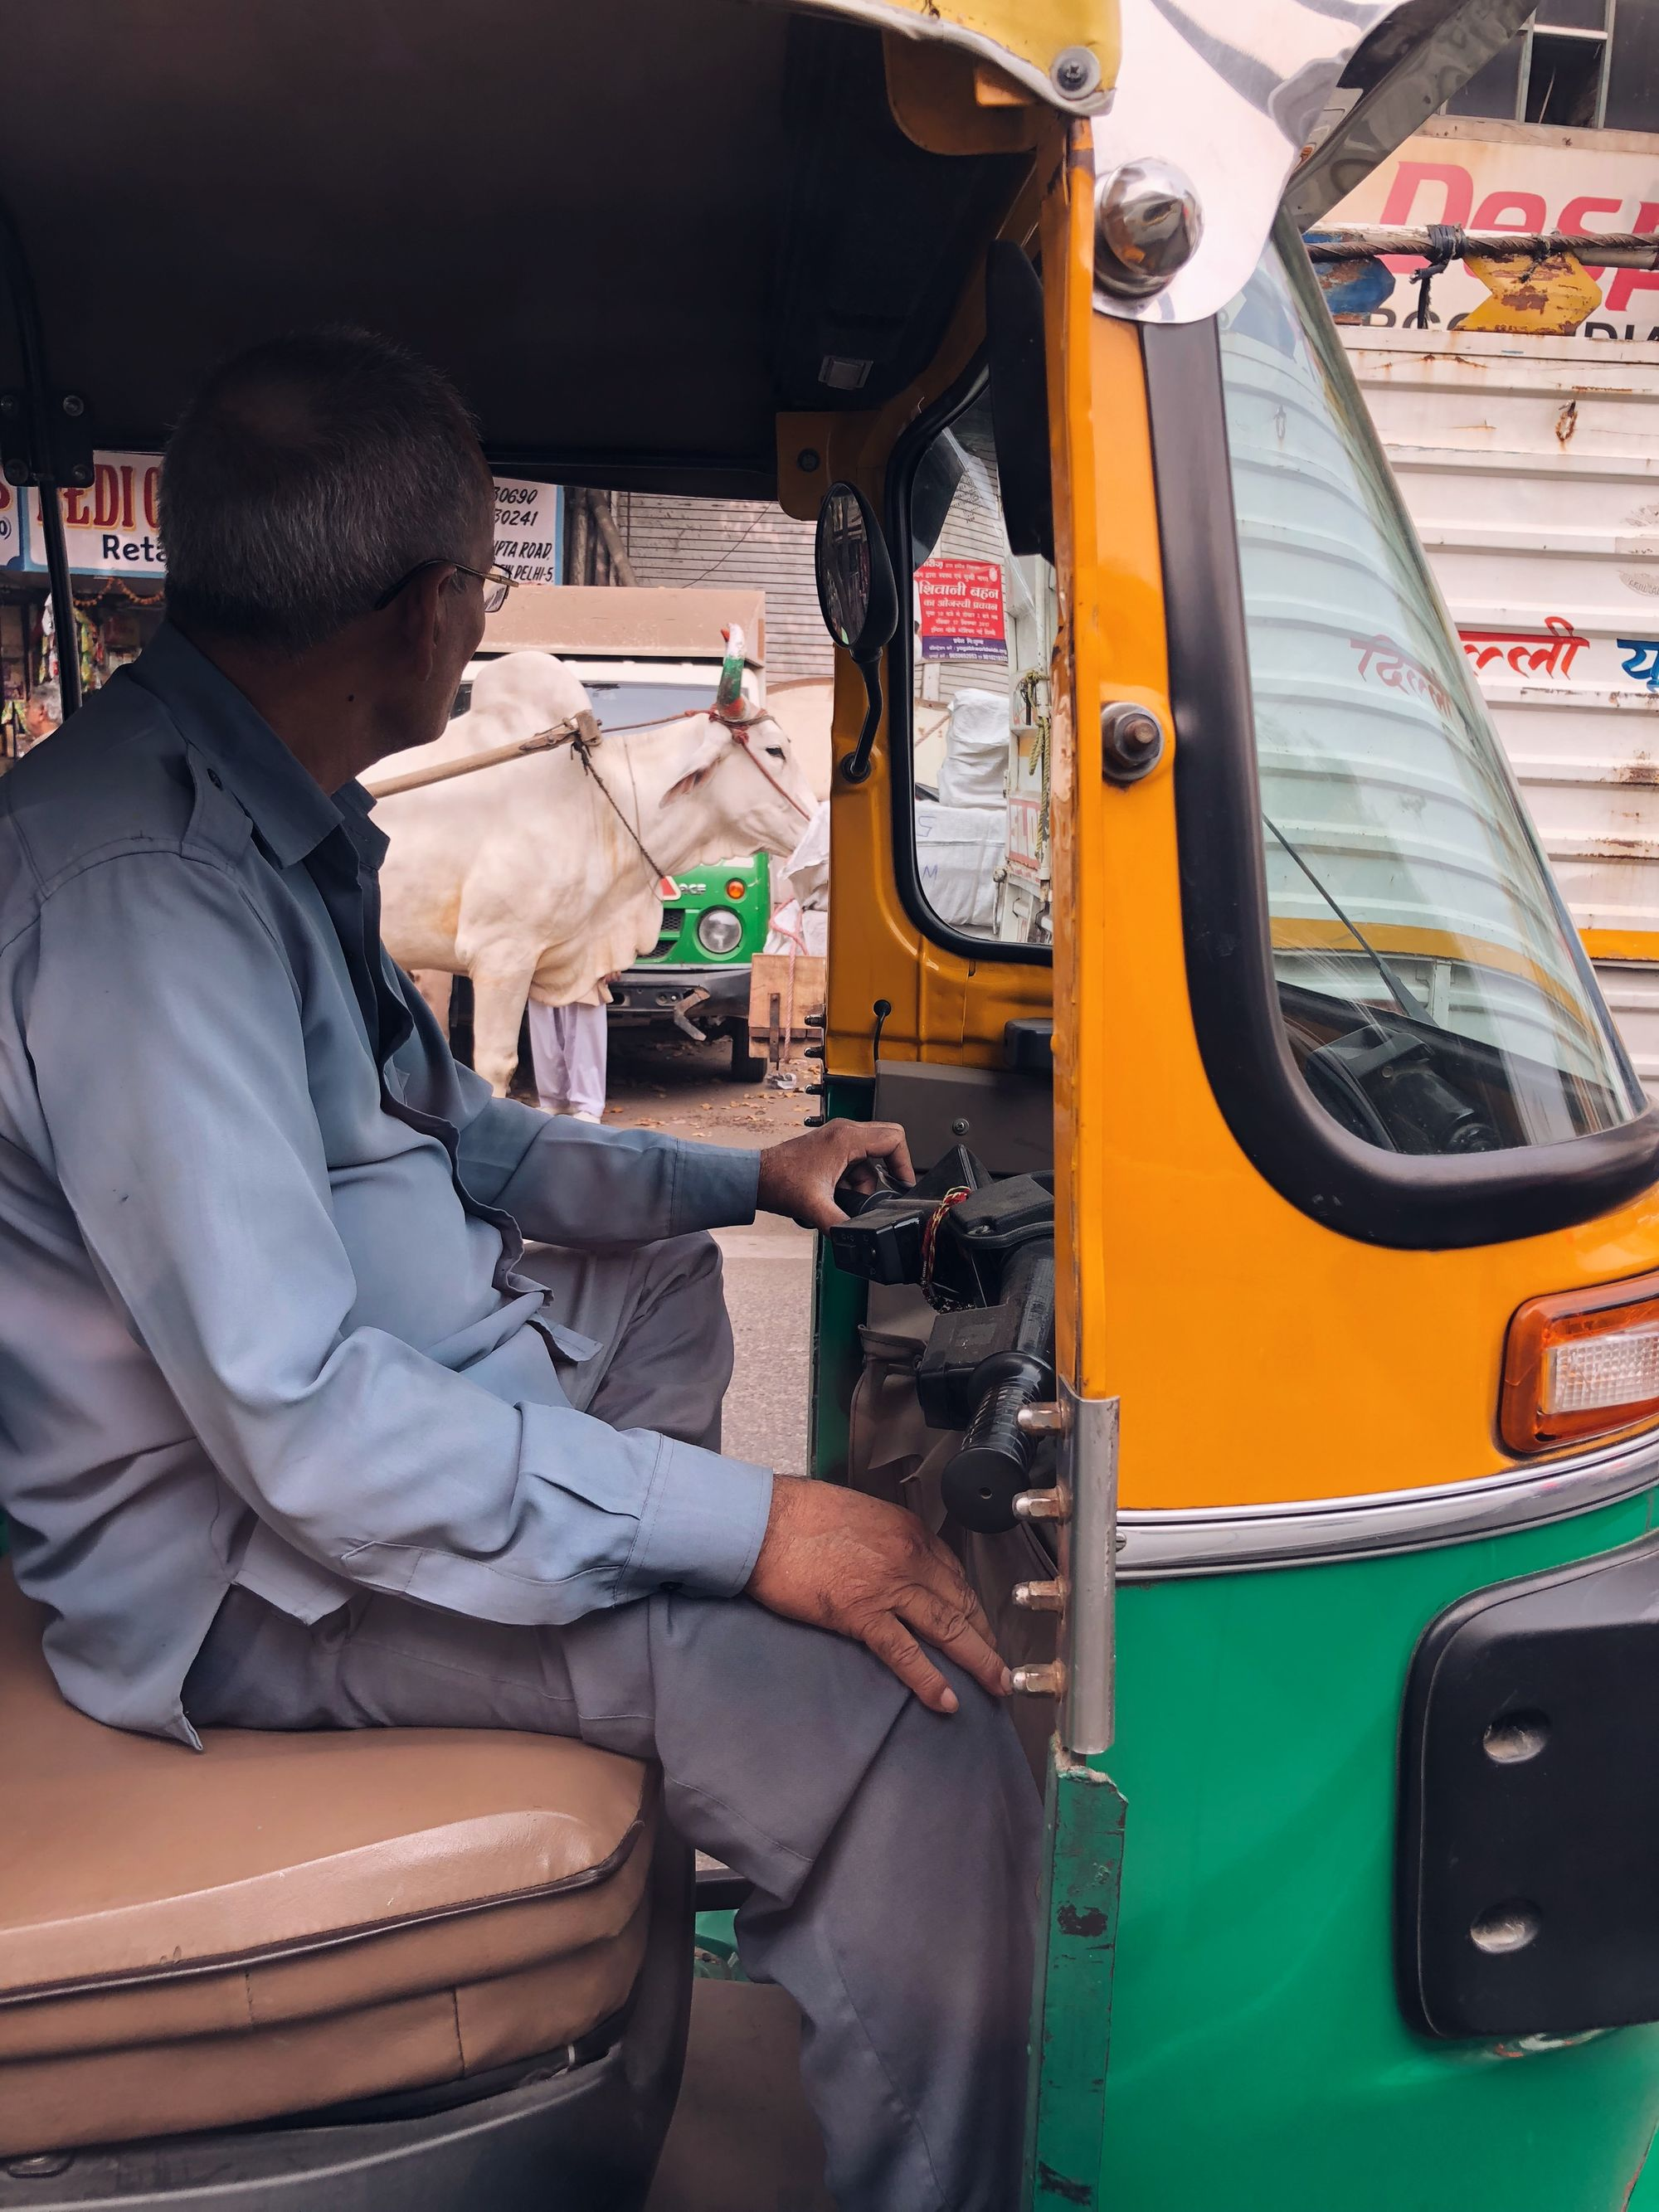 Rickshaw driver and cow in Delhi, India.